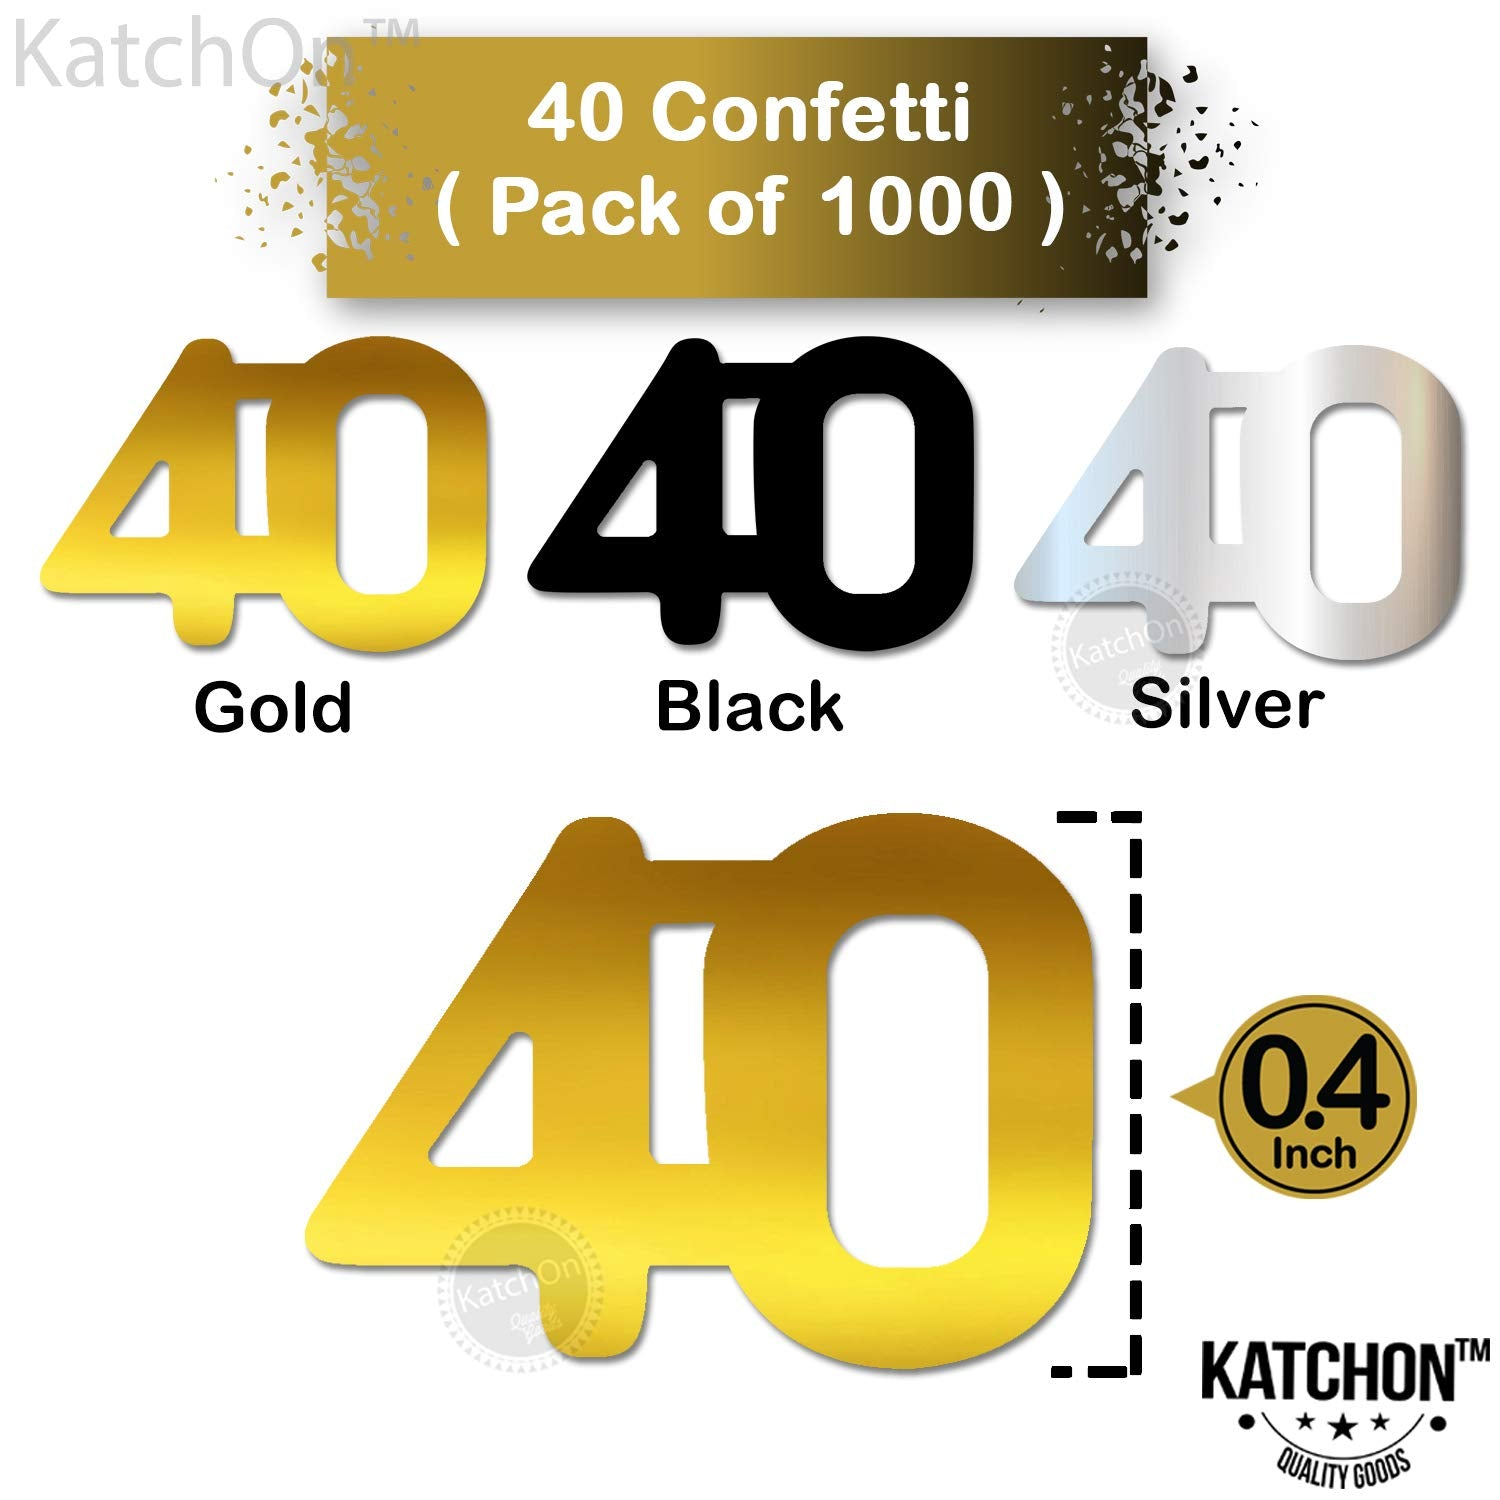 BLACK AND SILVER FOIL CONFETTI SCATTERS 50TH BIRTHDAY ANNIVERSARY PARTY TABLE